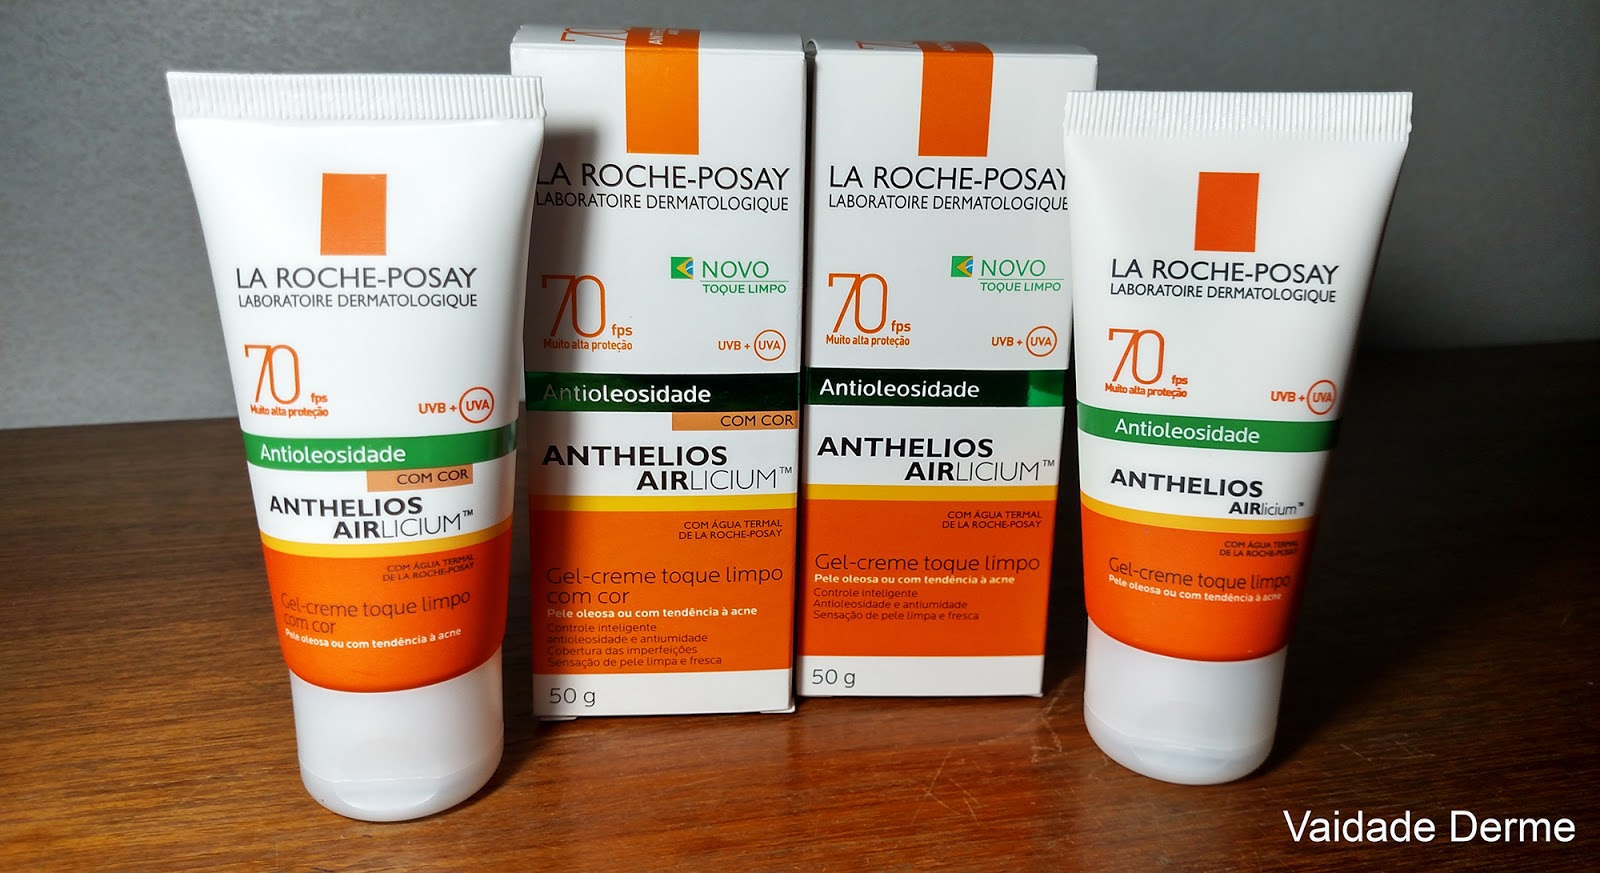 La Roche-Posay Anthelios Airlicium